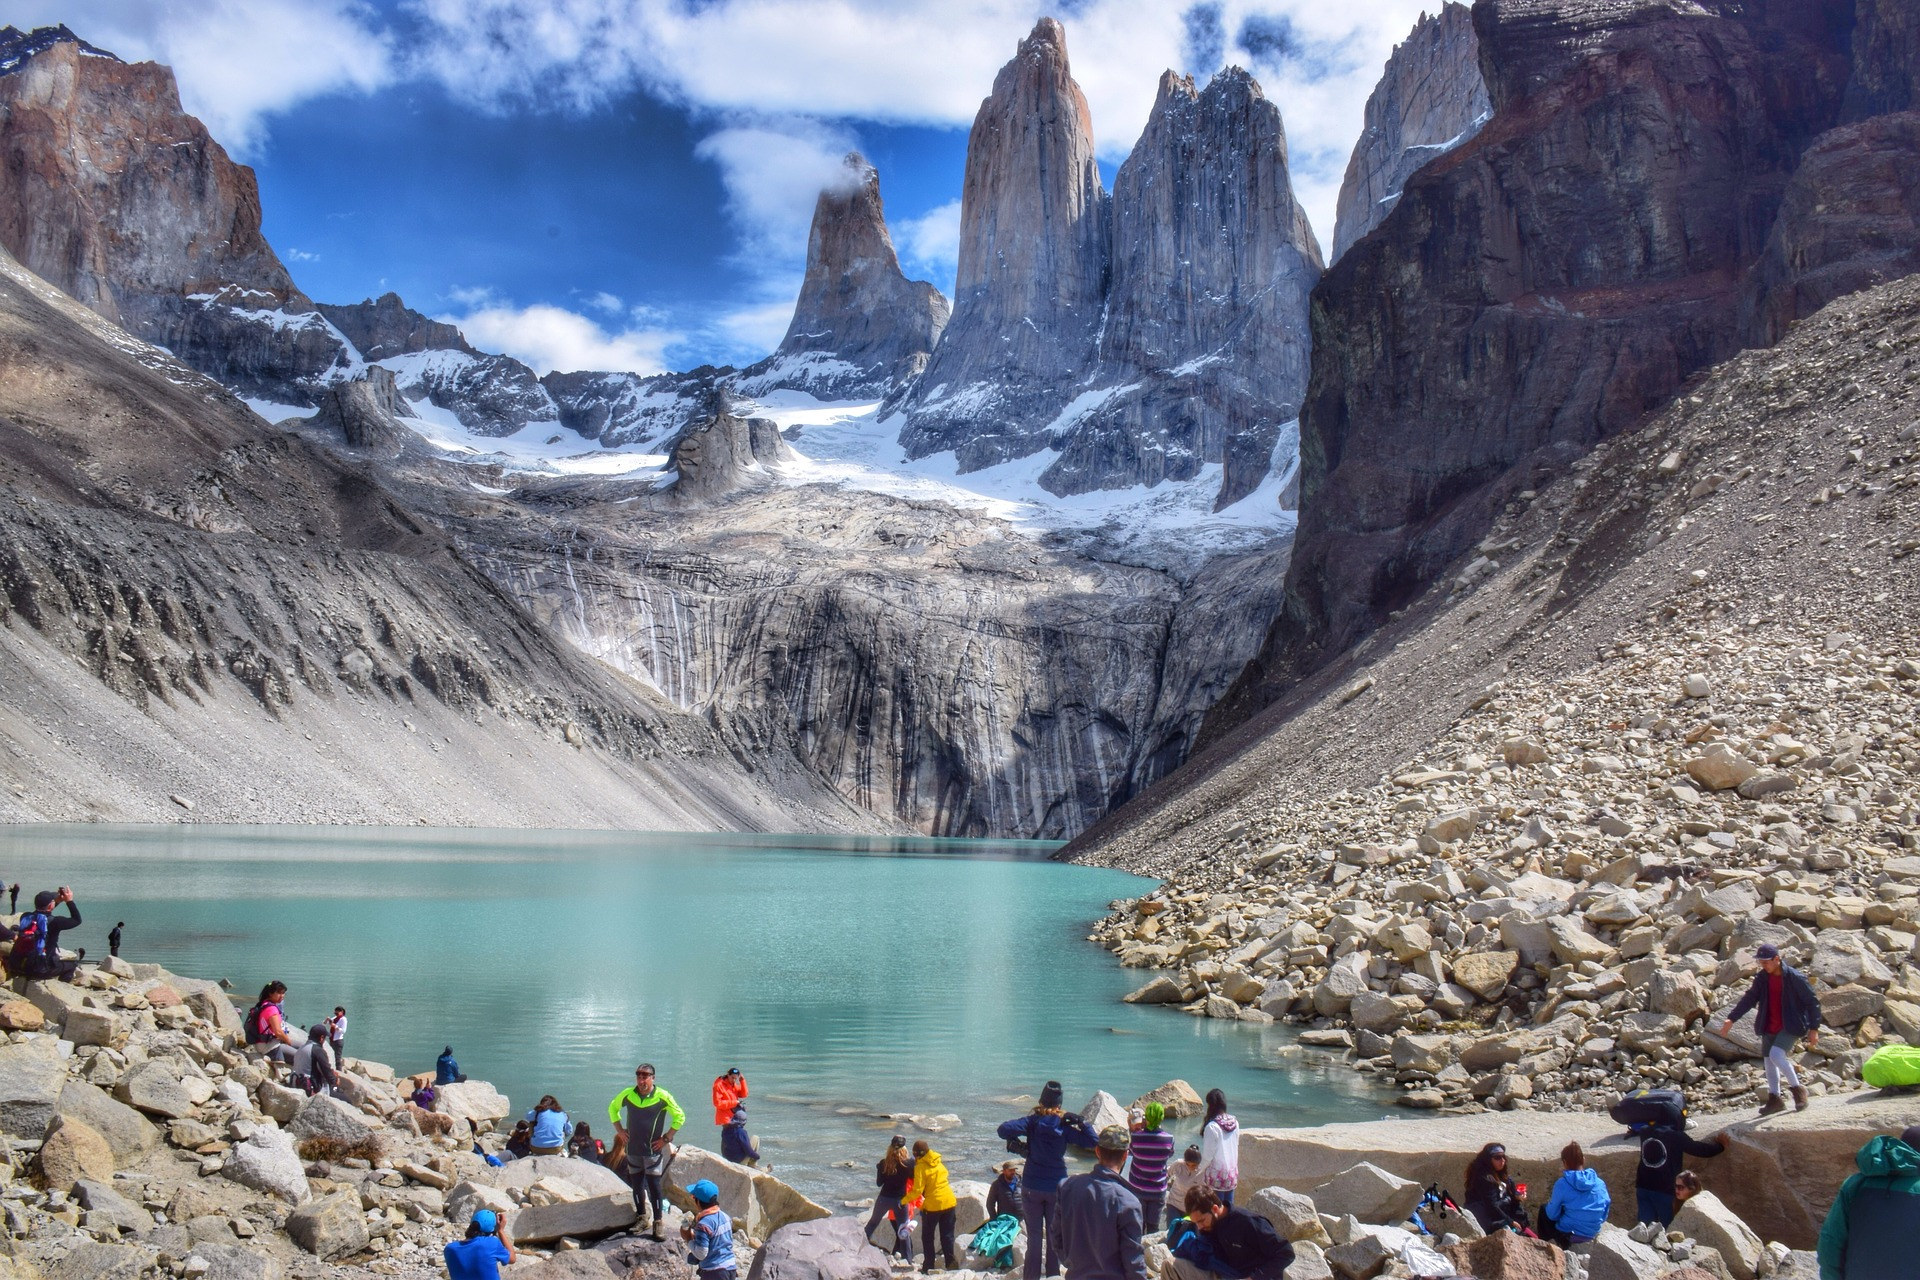 Taking in the wilderness of Patagonia